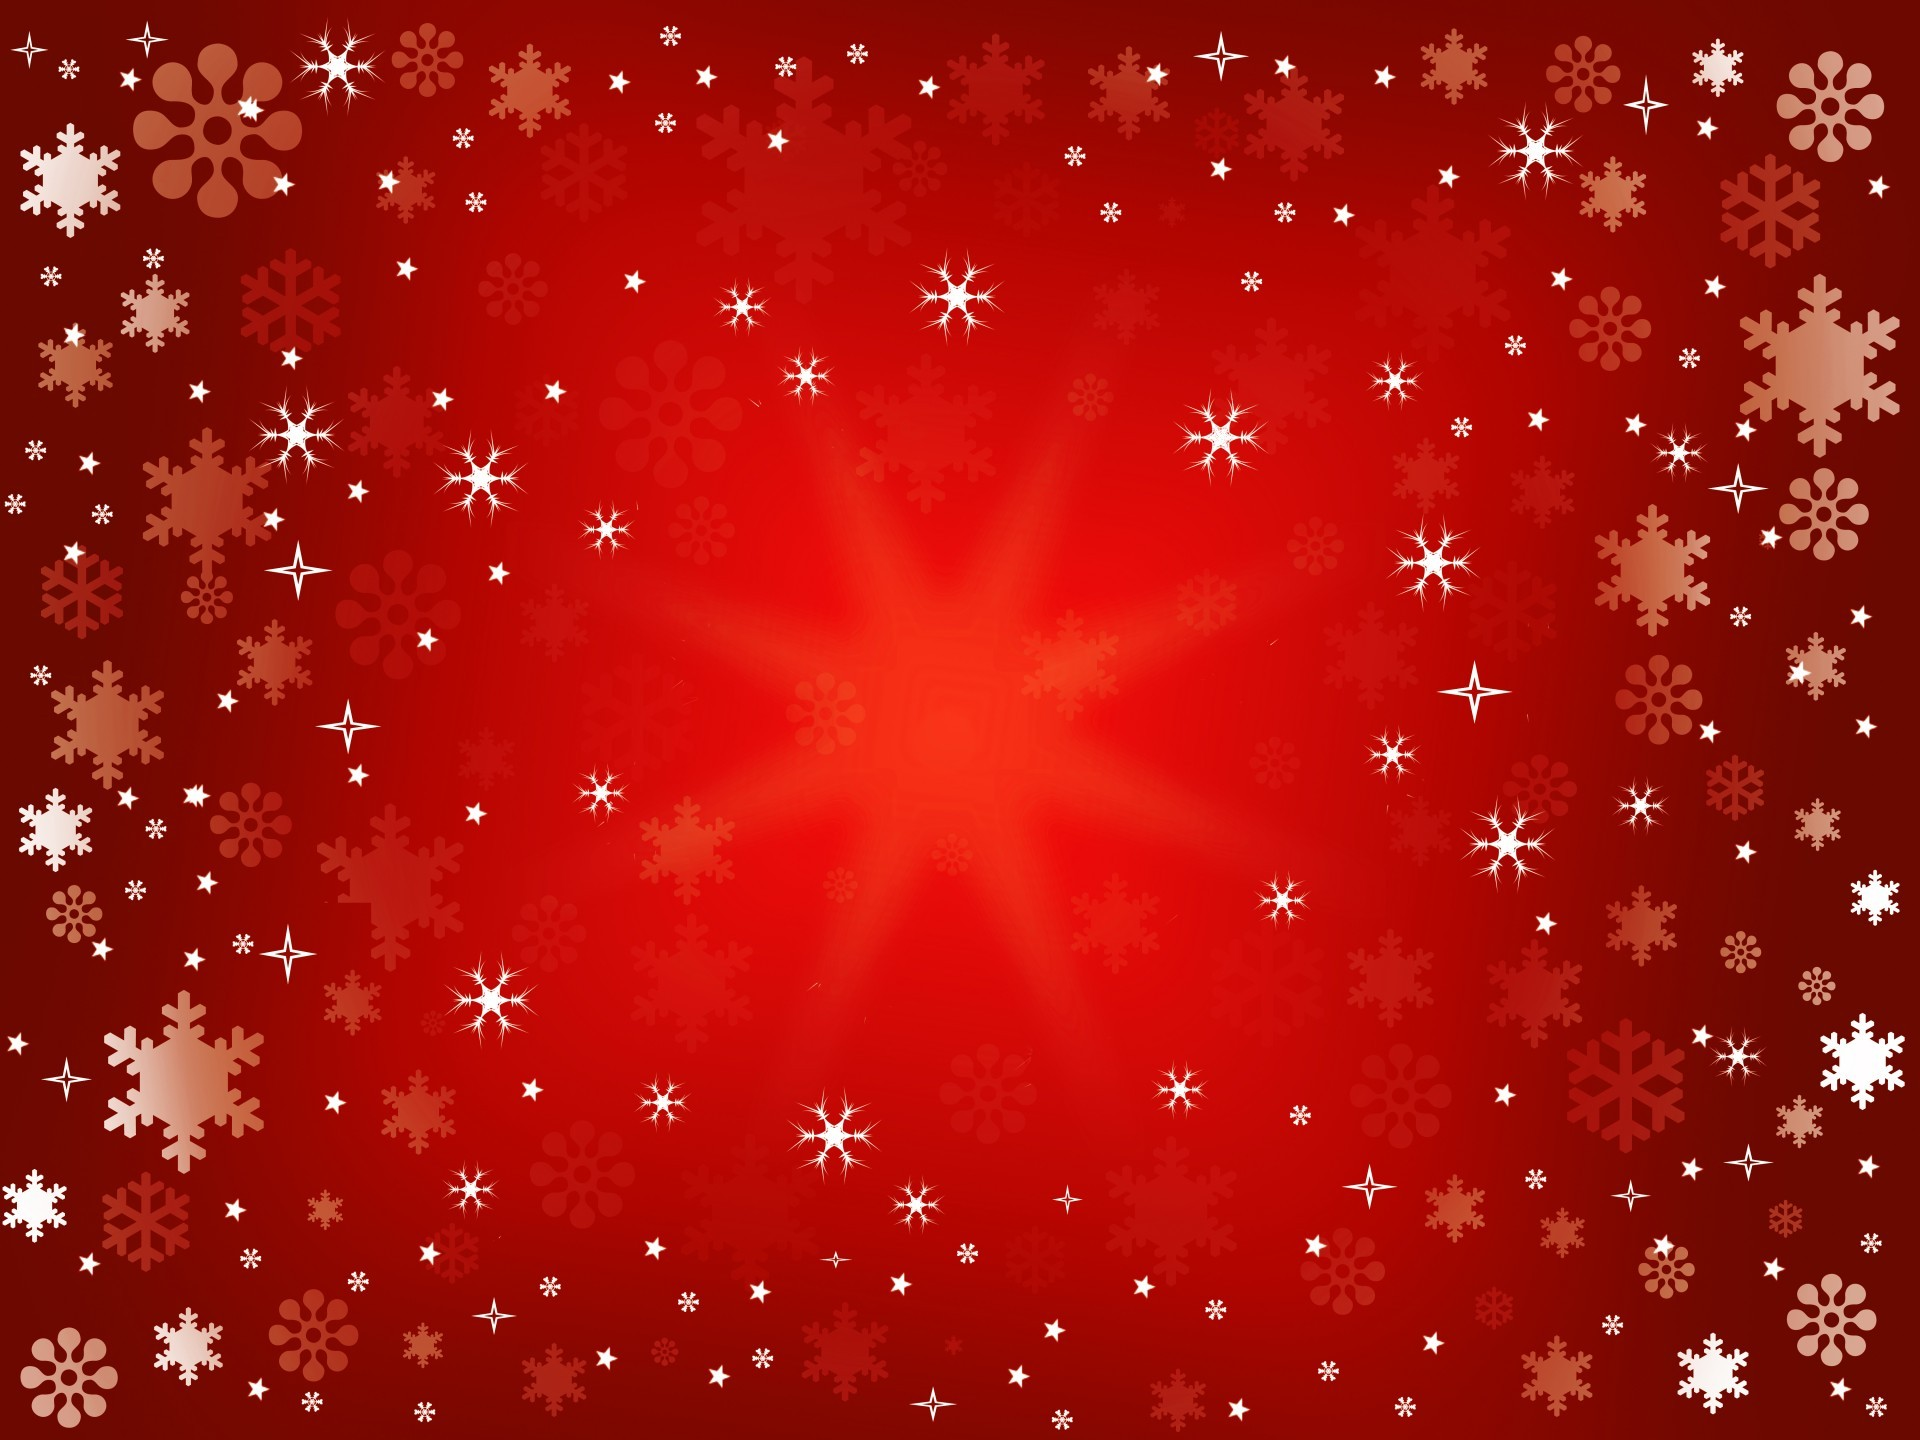 holiday background  u00b7 u2460 download free cool high resolution